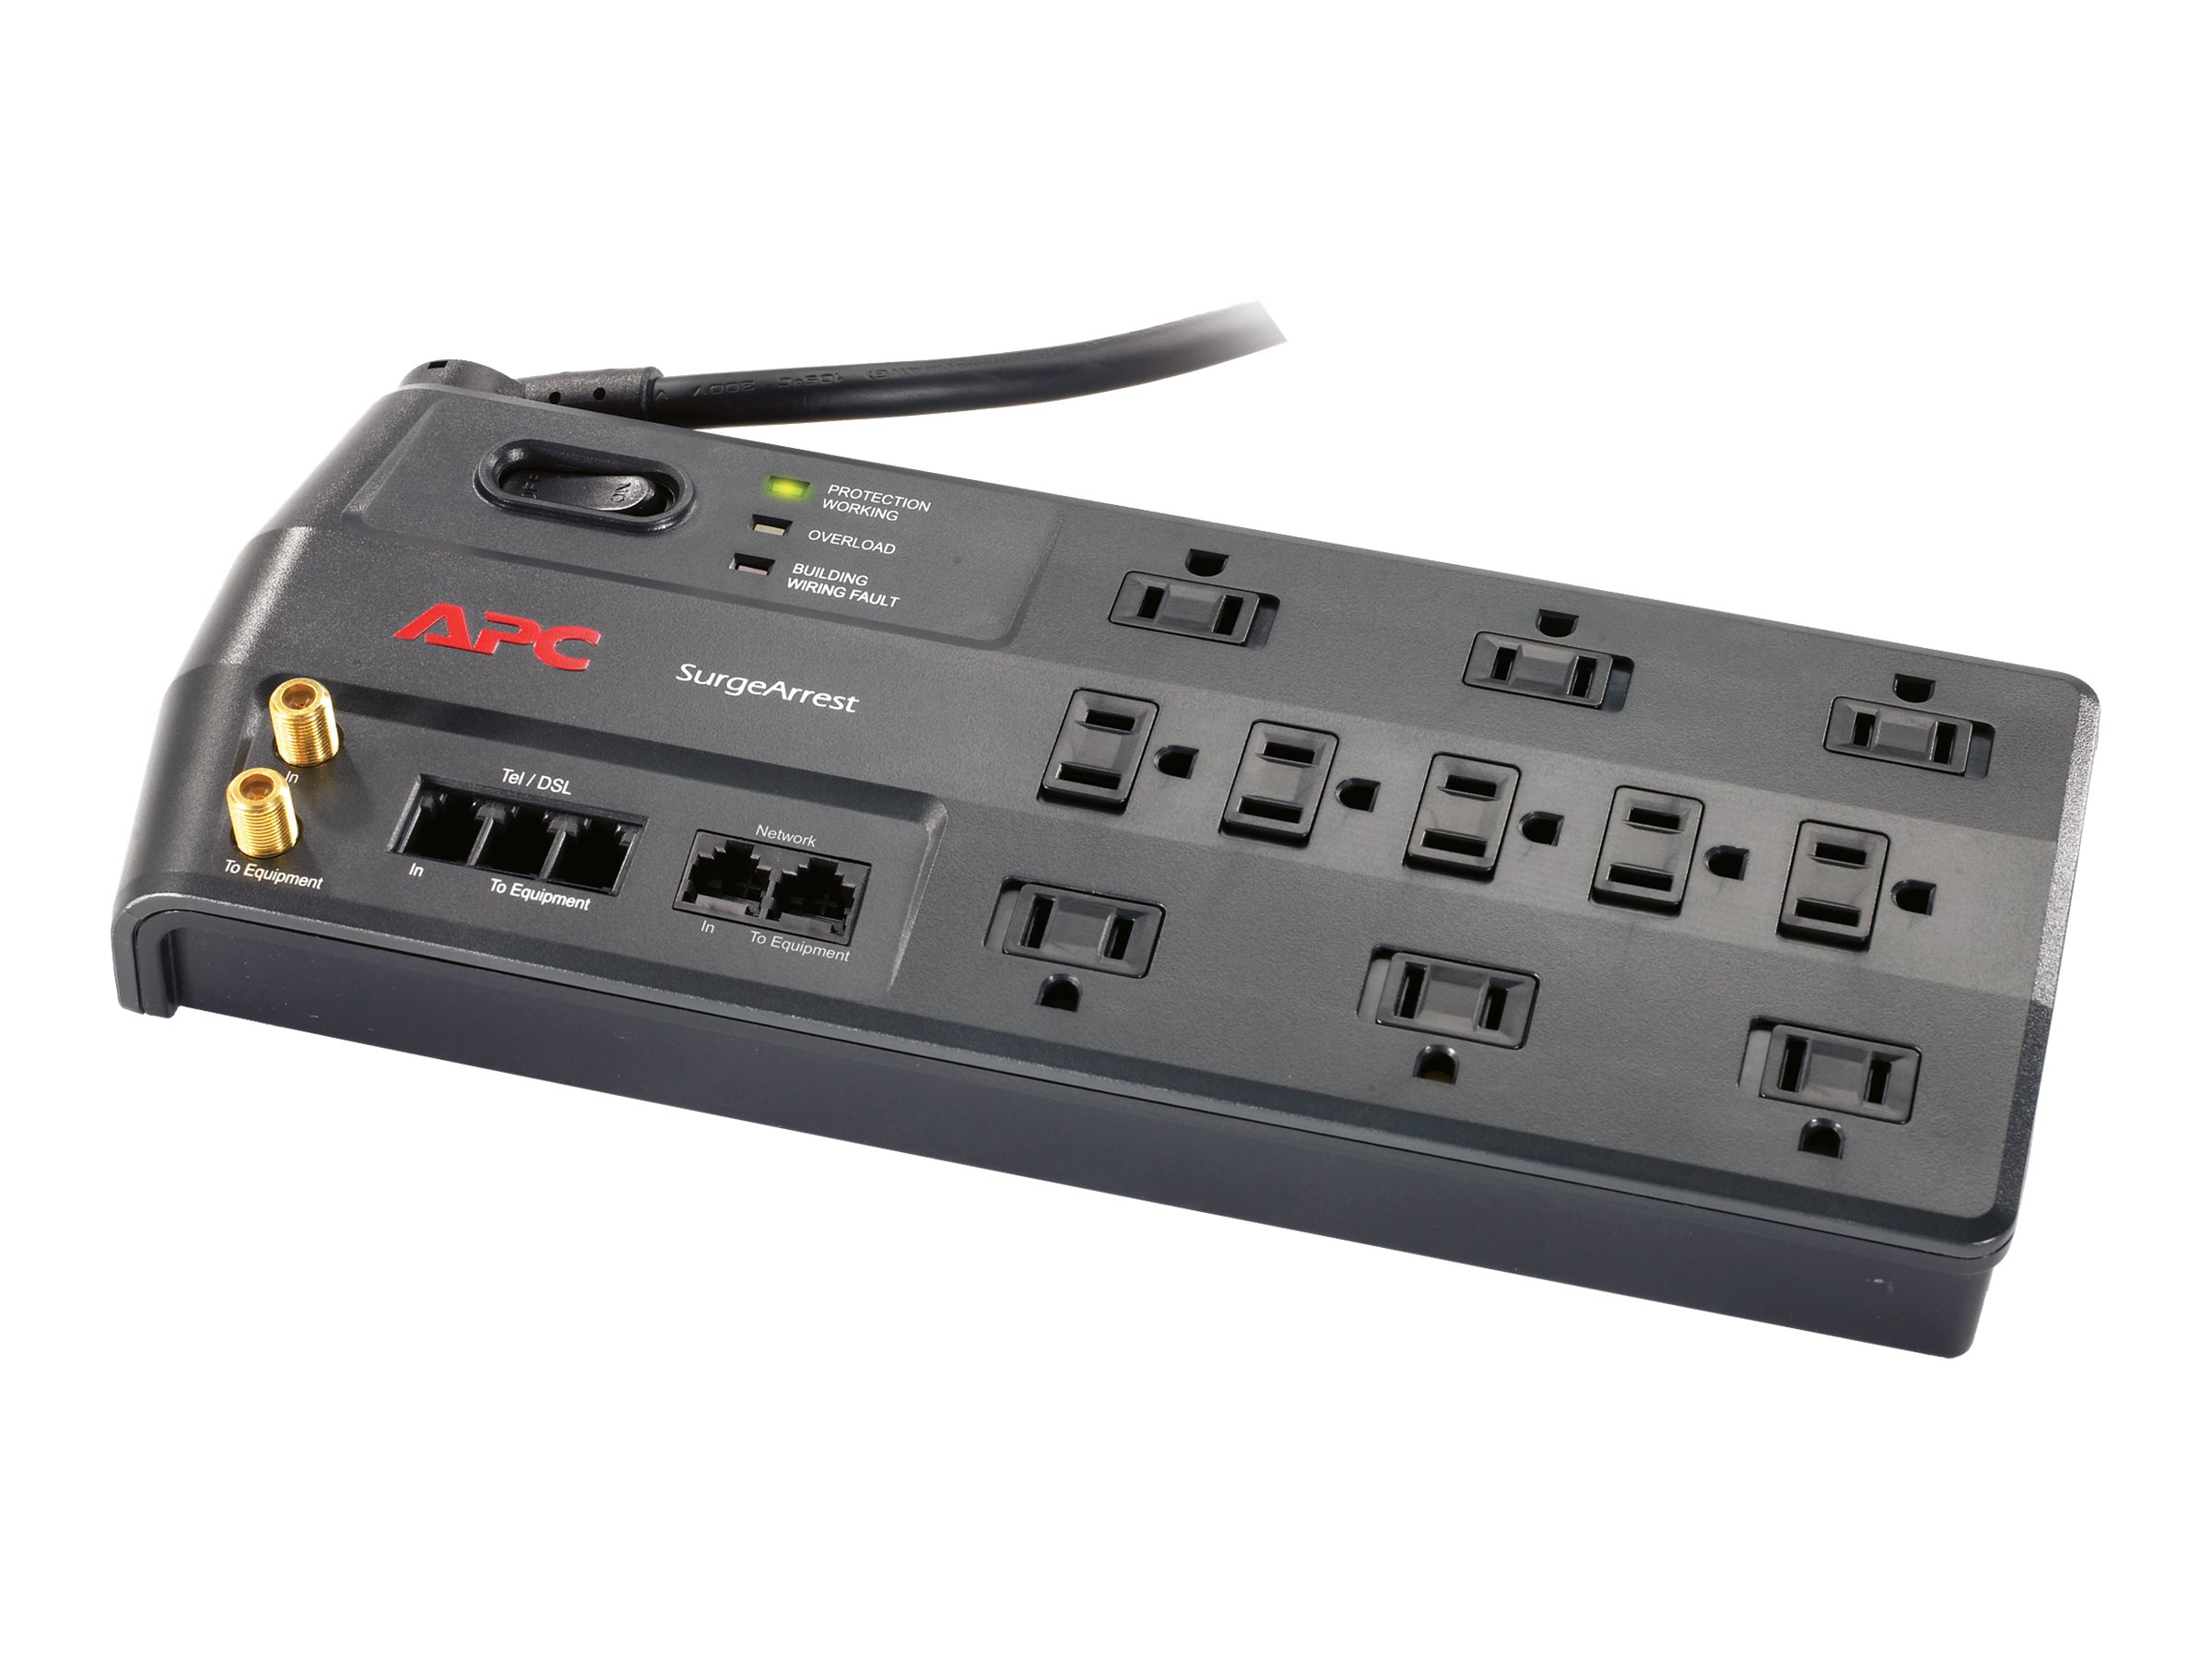 APC Performance SurgeArrest 3020 Joules with Telephone Splitter, Coax, Network, 120V, (11) Outlets